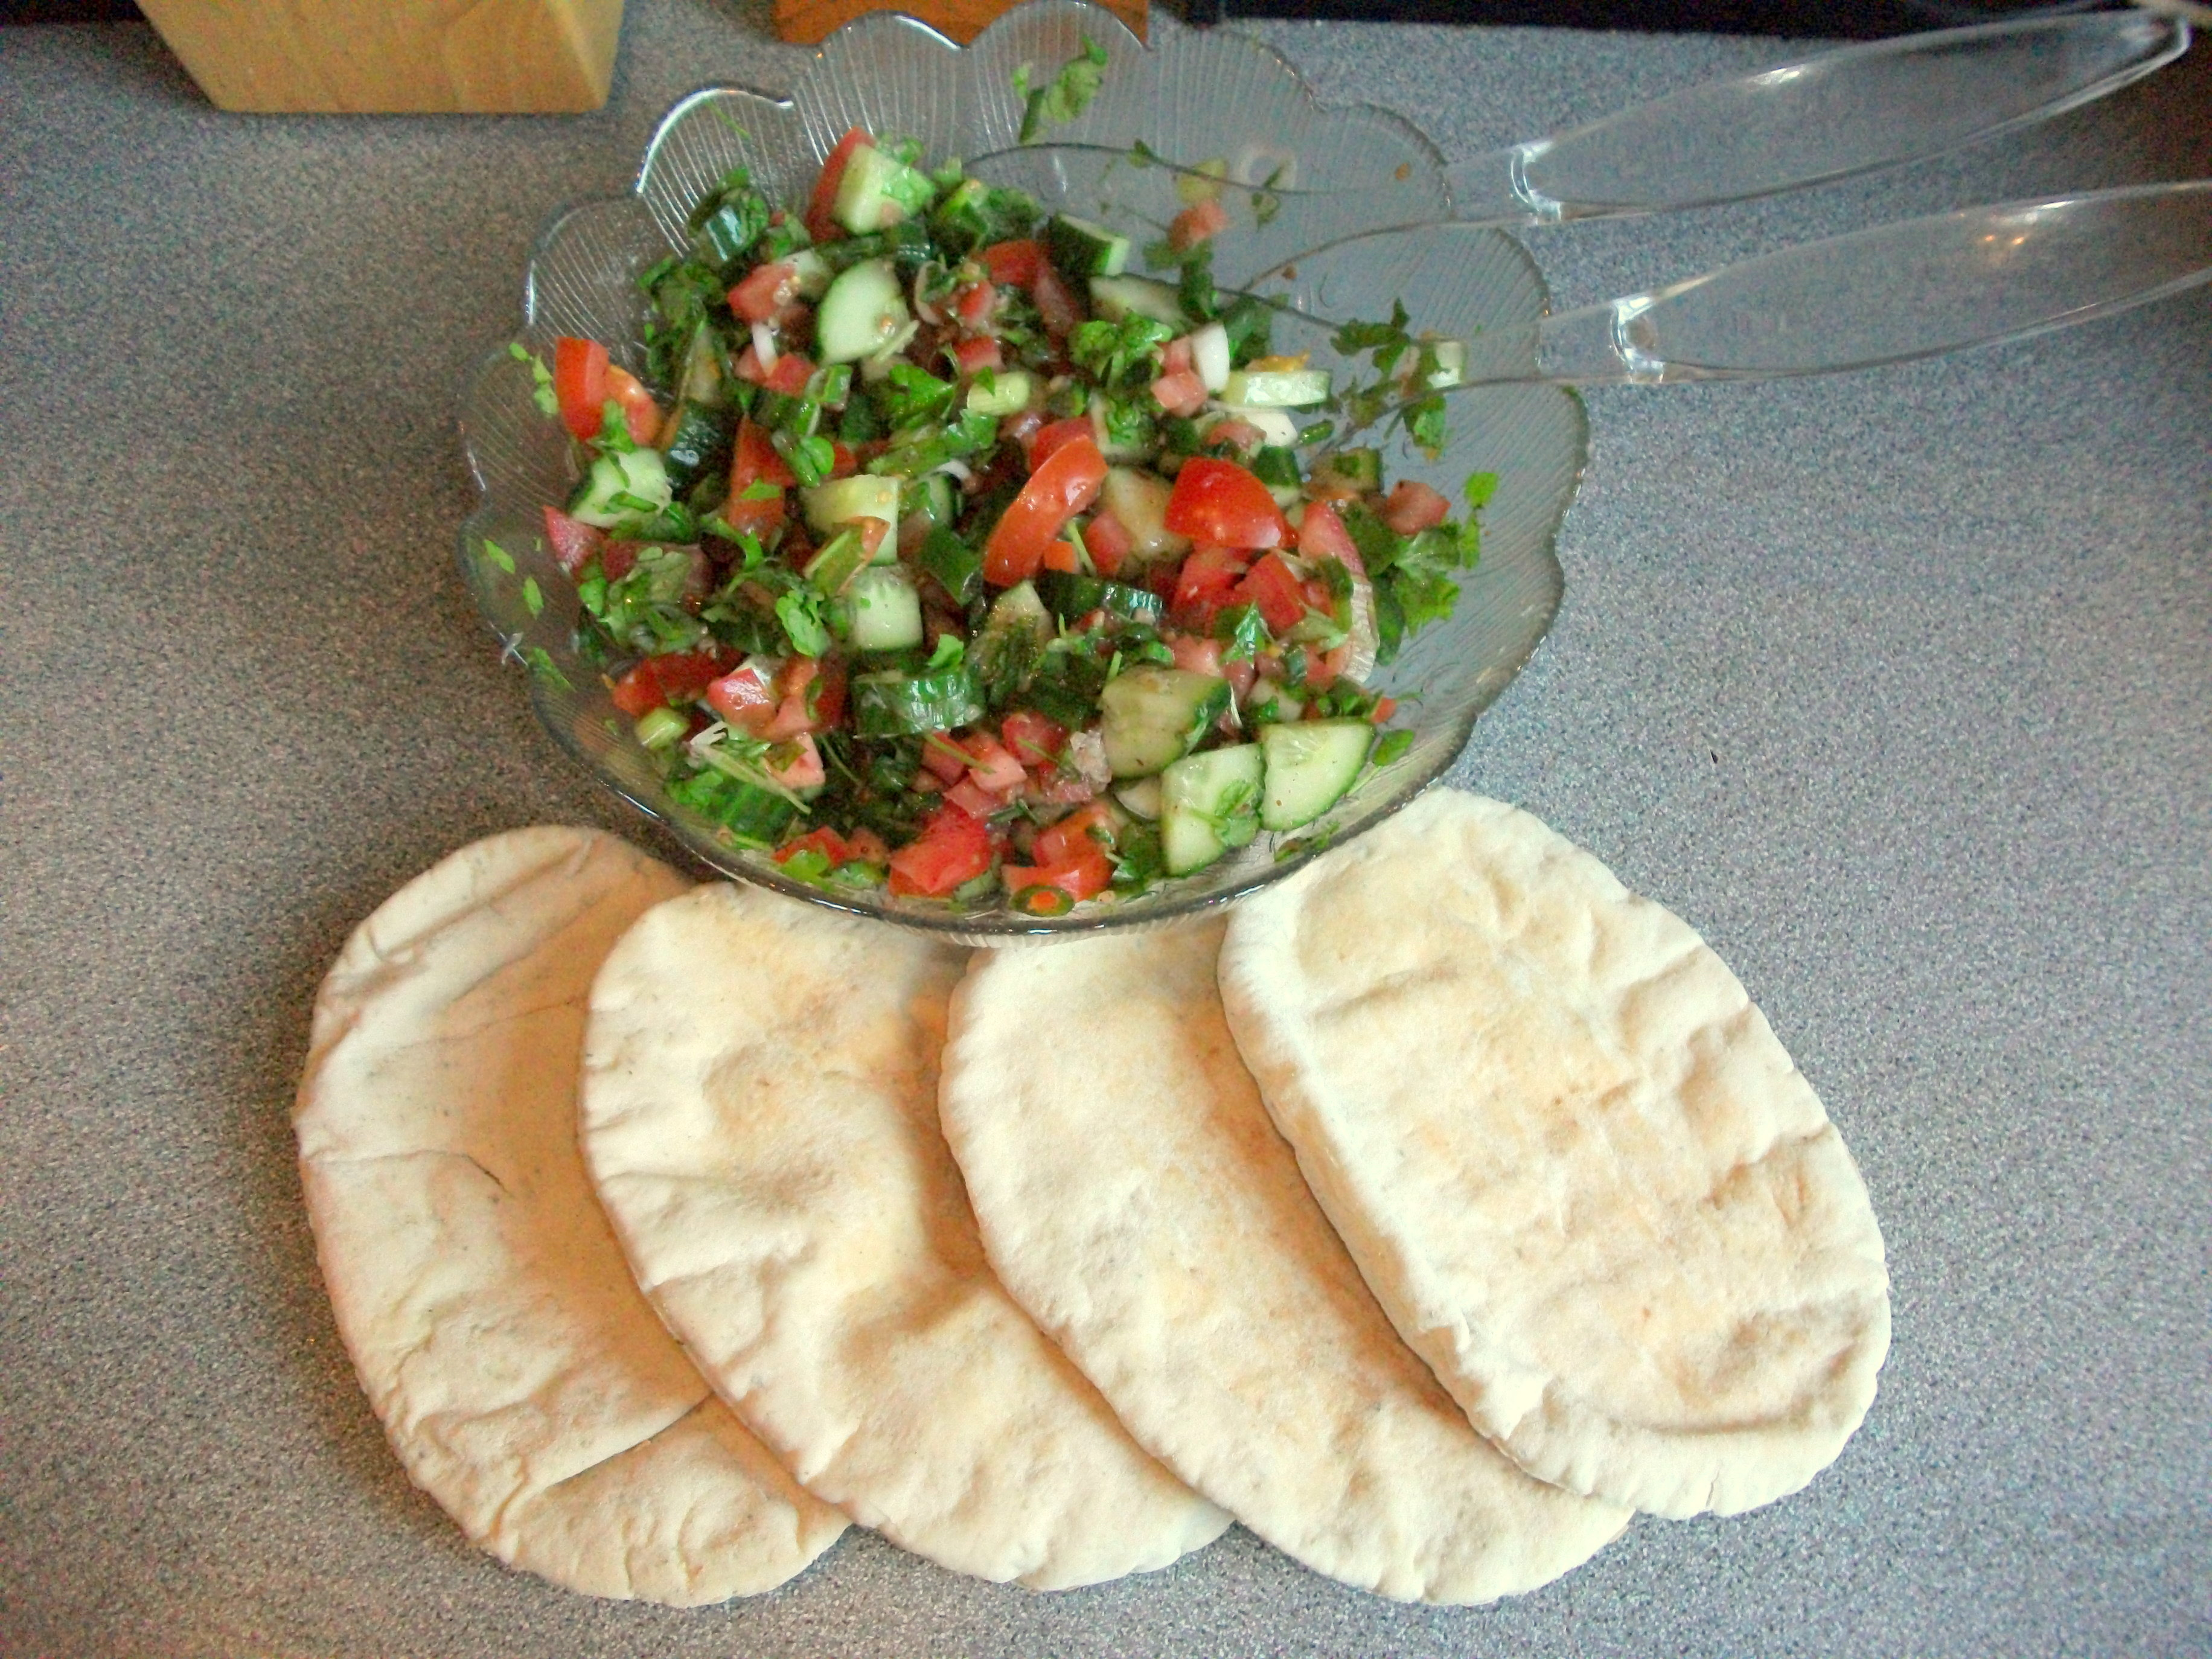 Picture of Fatoush - a Zesty Middle-eastern Salad